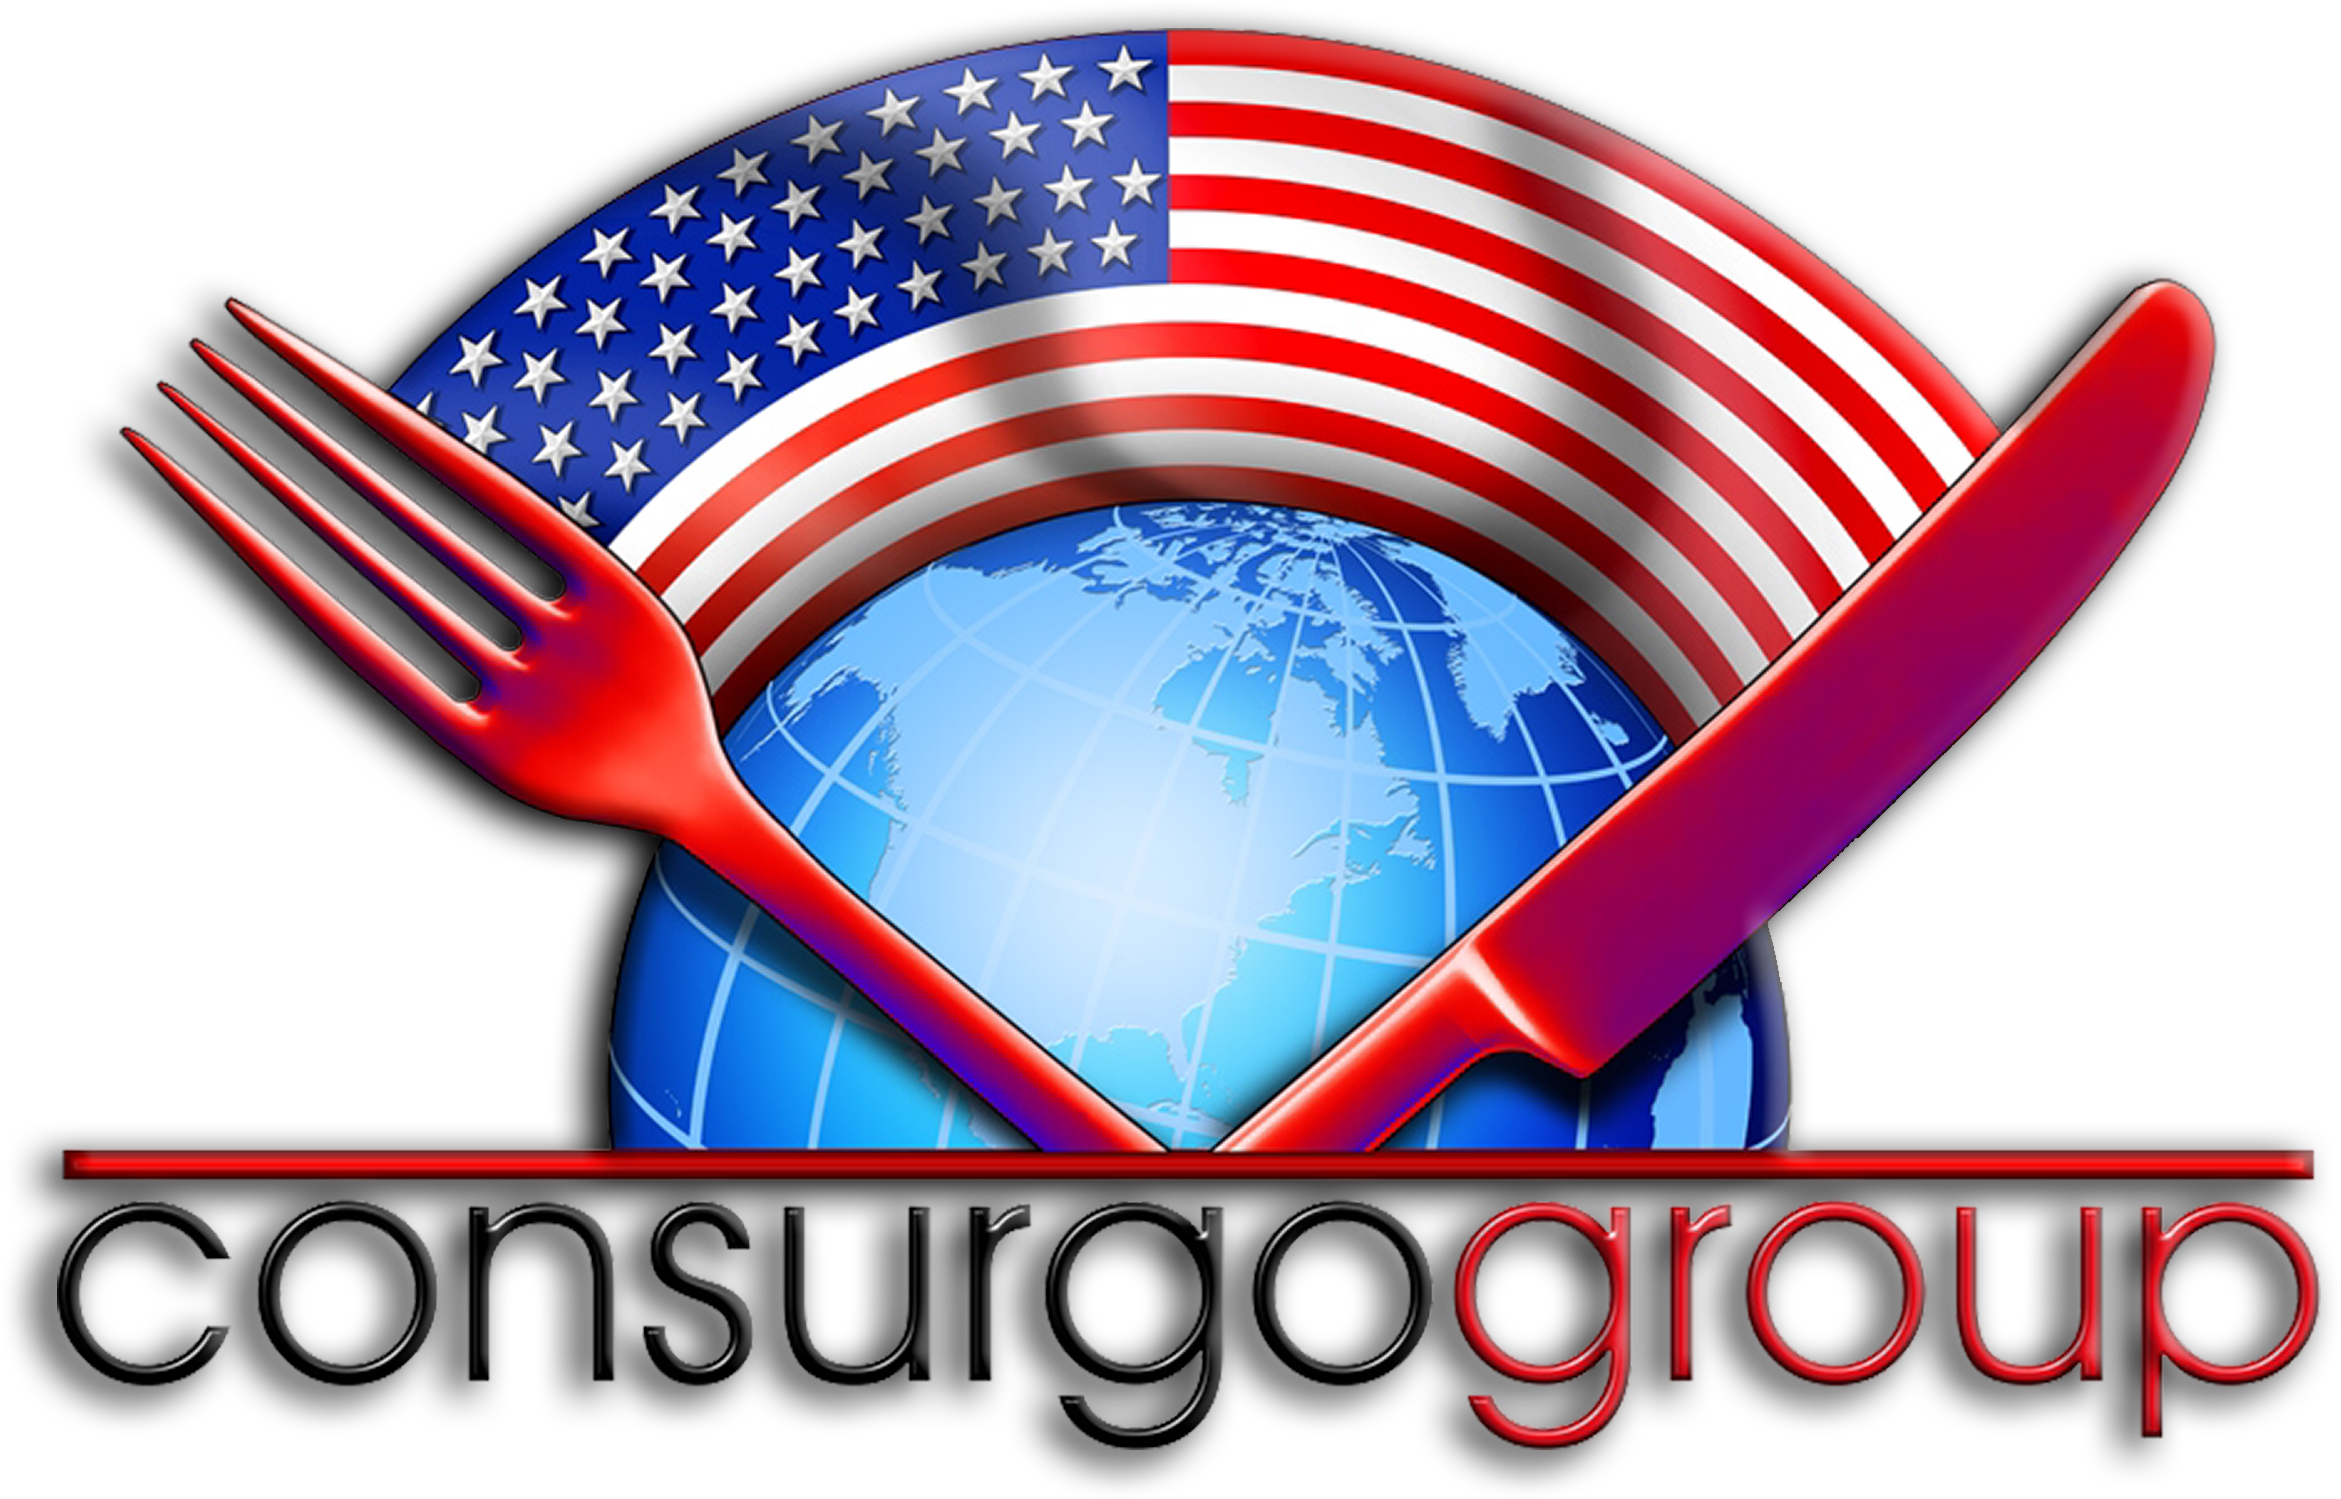 Consurgo Group